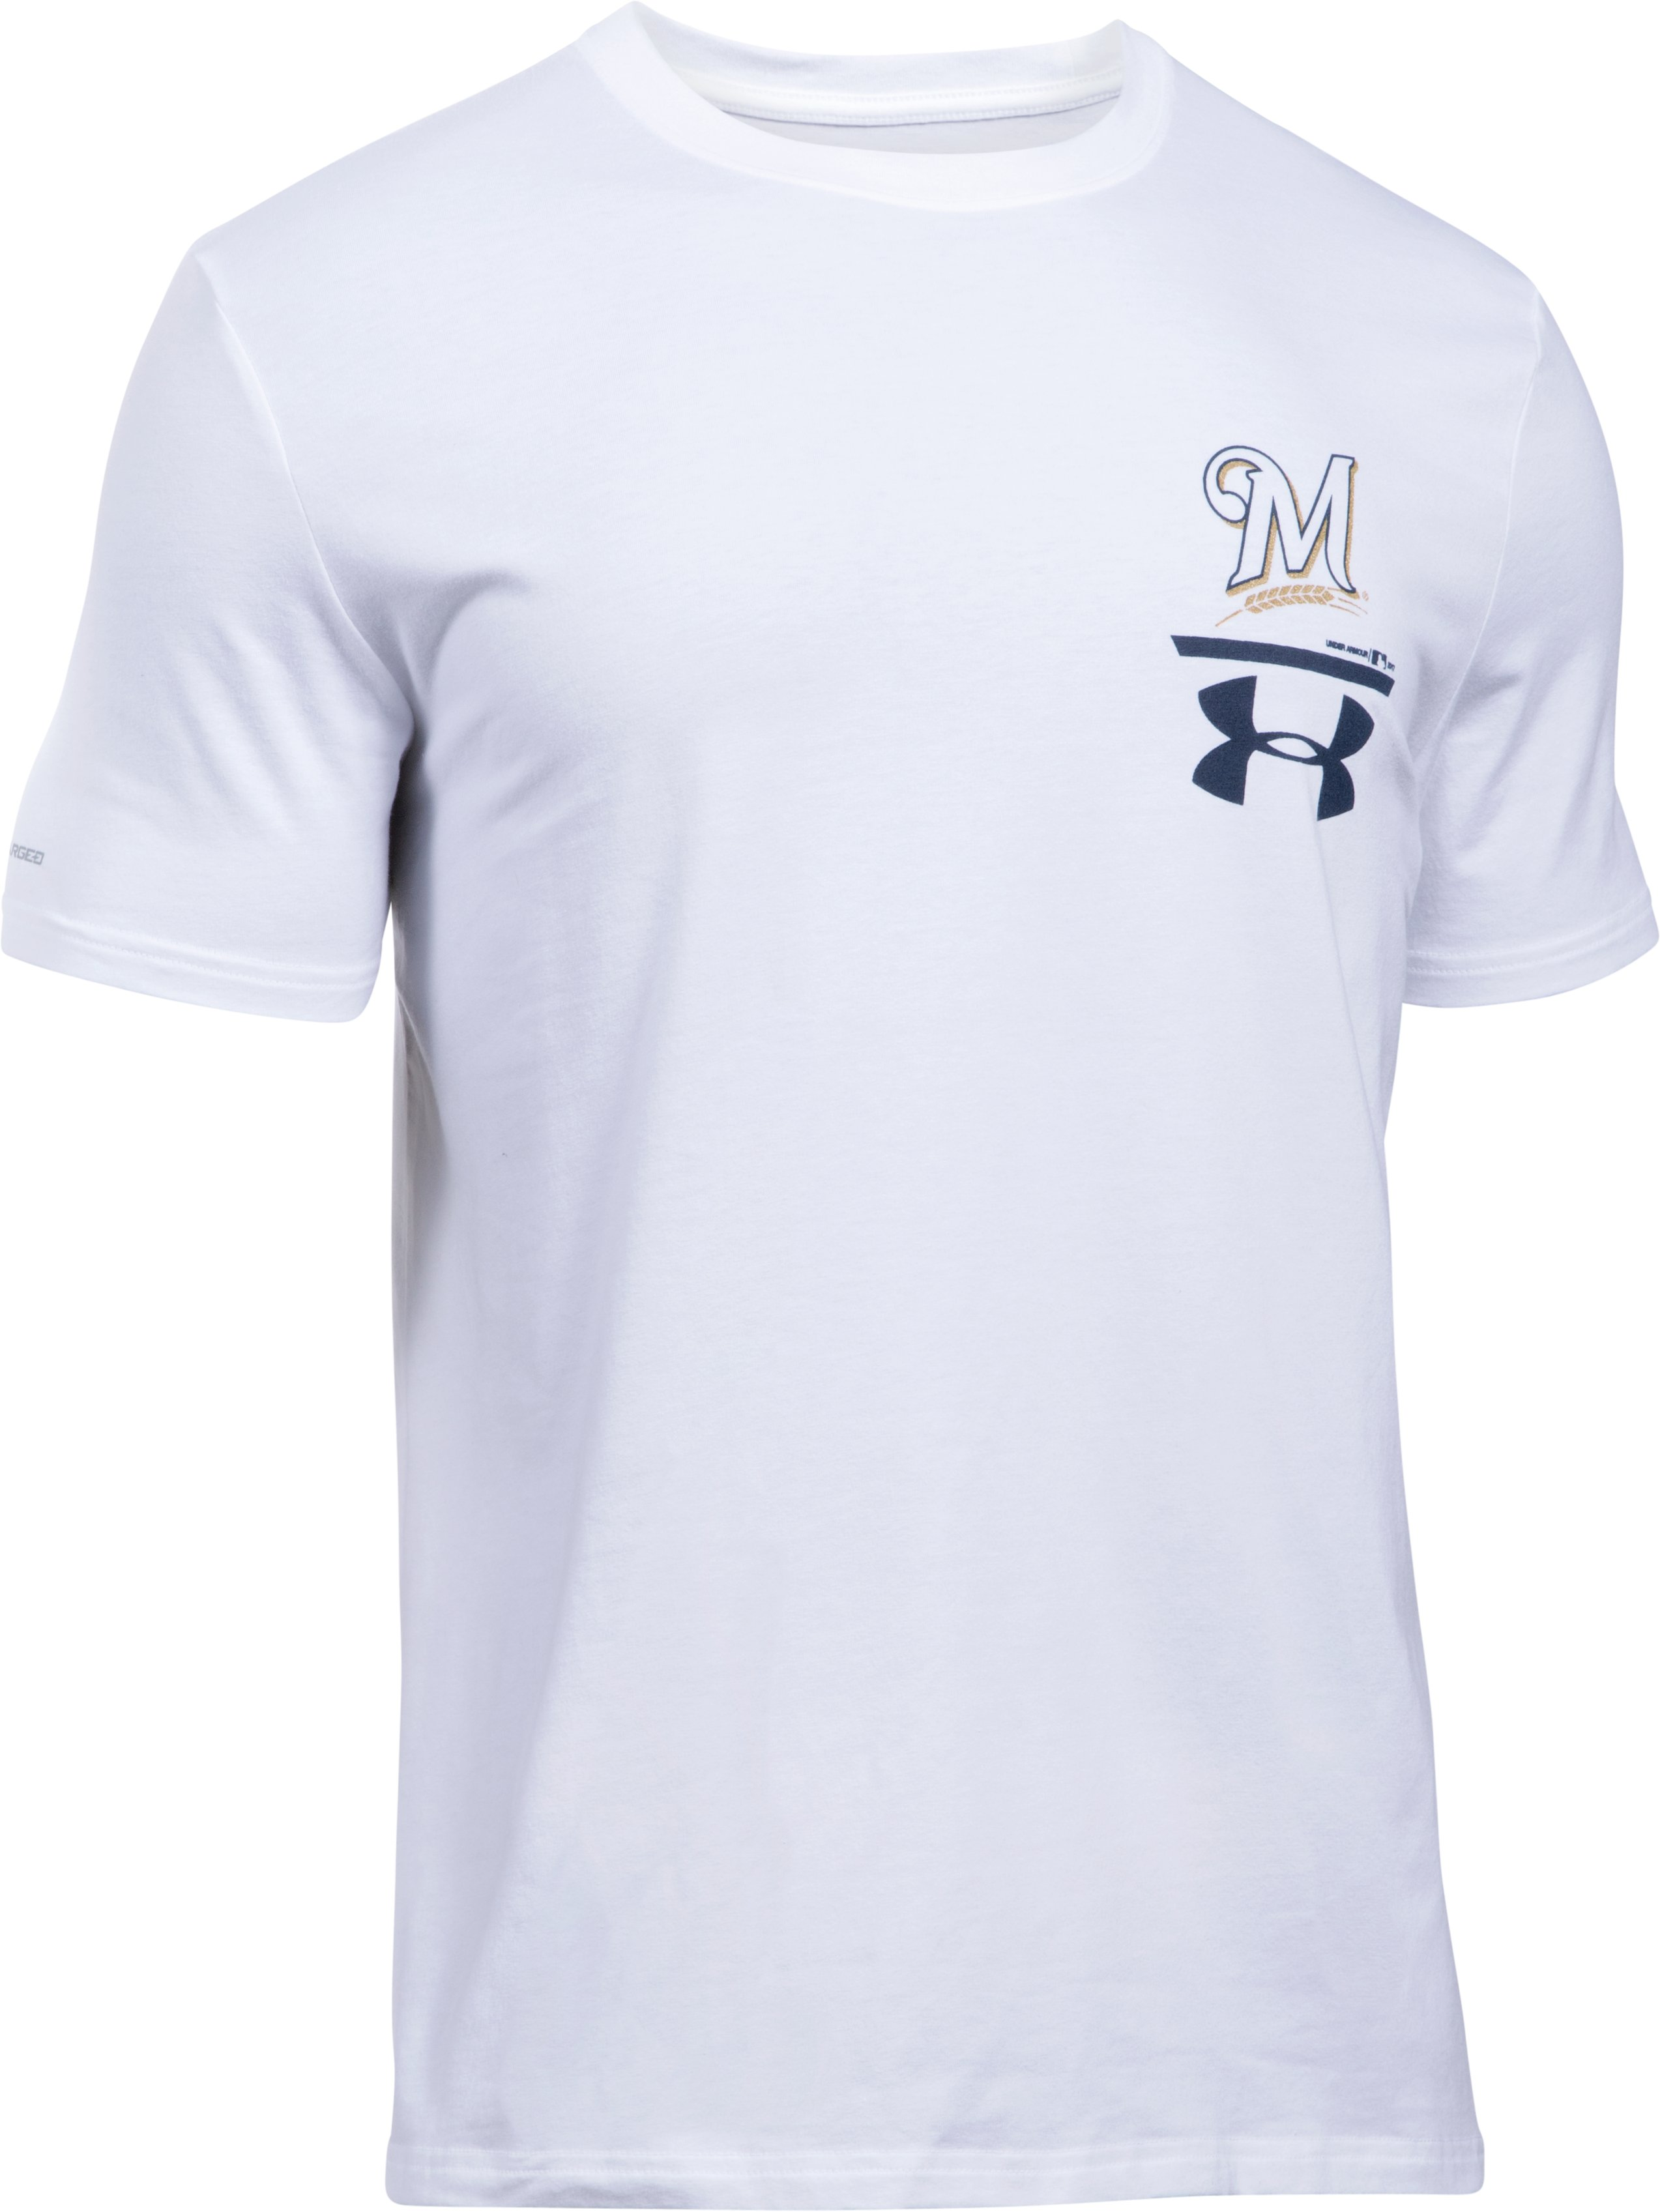 Men's Milwaukee Brewers Logo T-Shirt, White, undefined